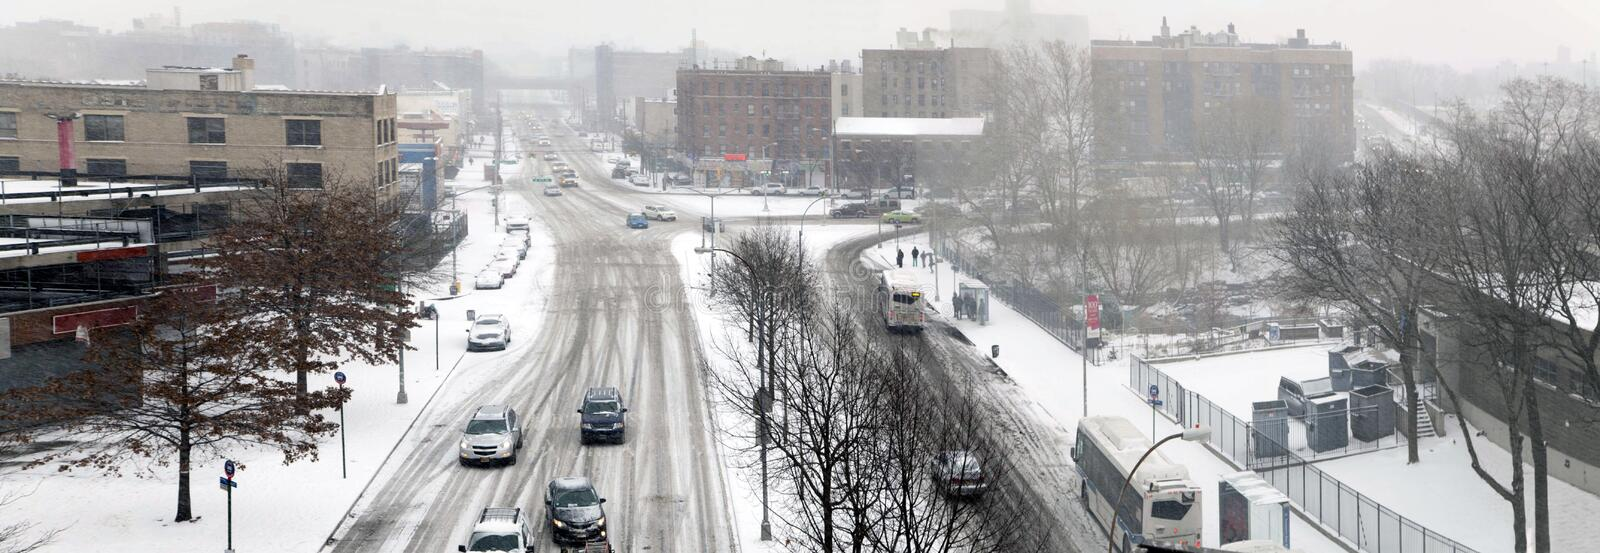 Download Street Traffic During Snow Storm In The Bronx Royalty Free Stock Photos - Image: 37693988